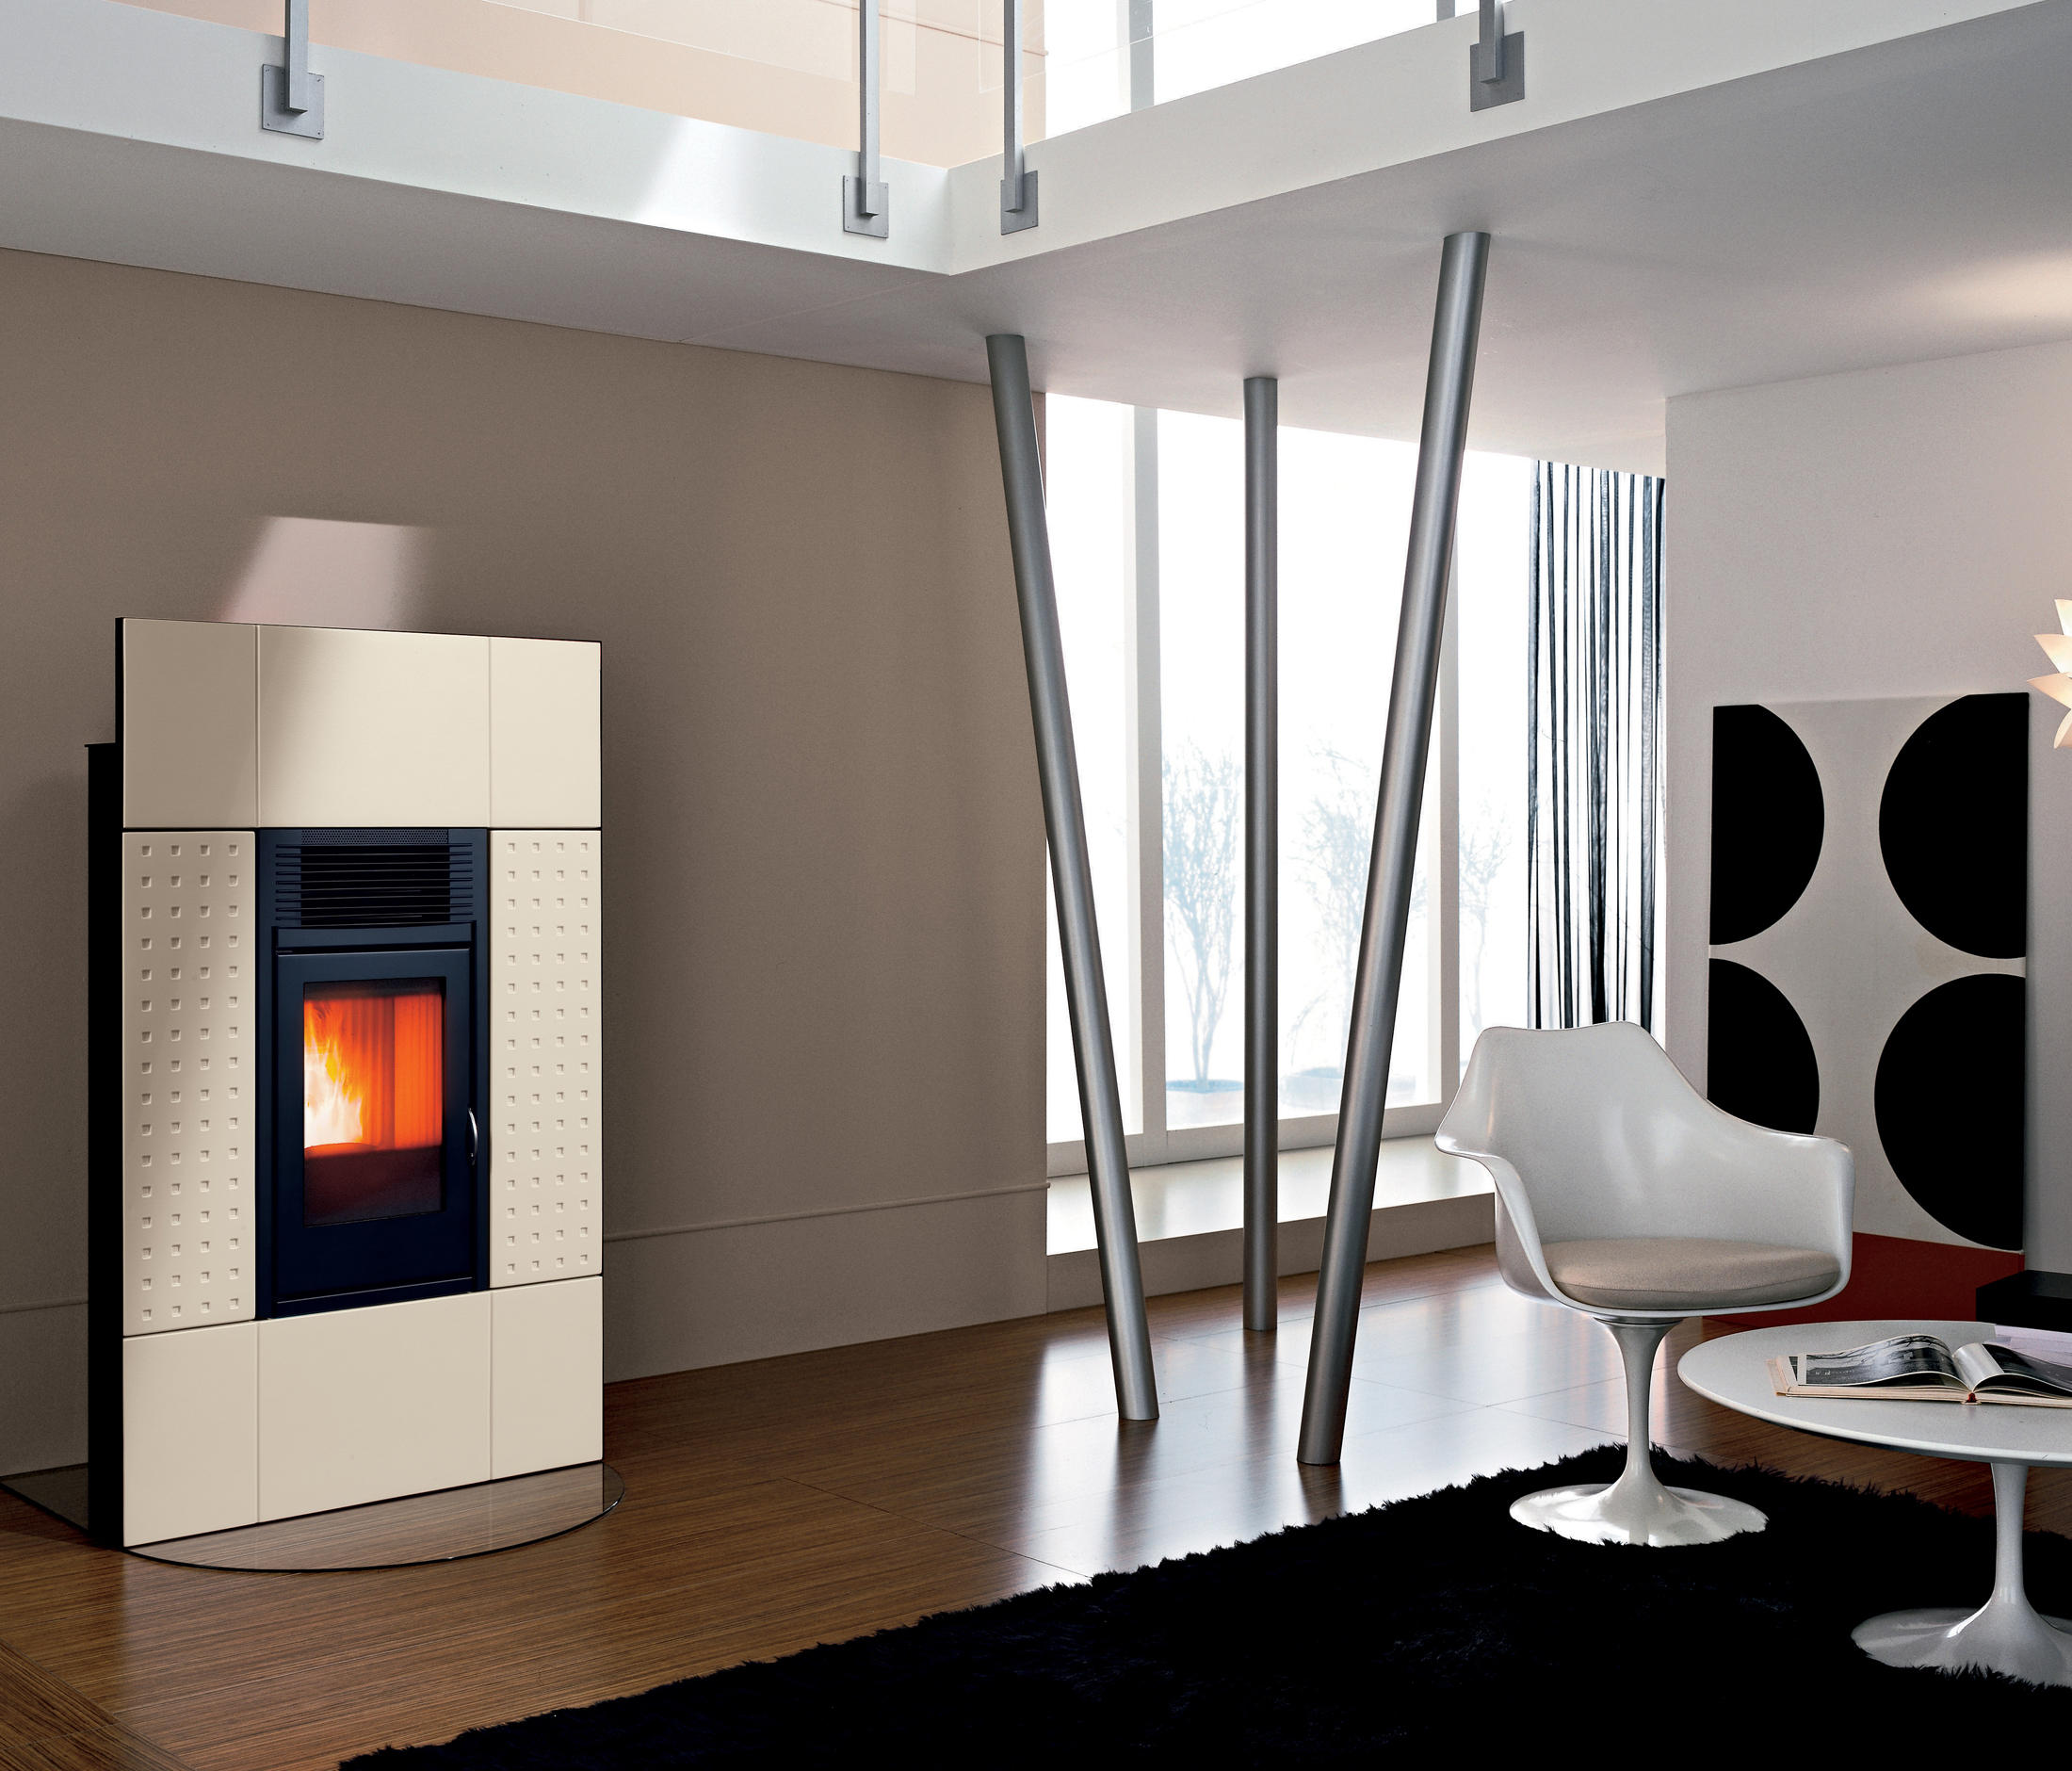 Caminetto Mcz Vivo 80 Class Modulo Pellet Stoves From Mcz Architonic